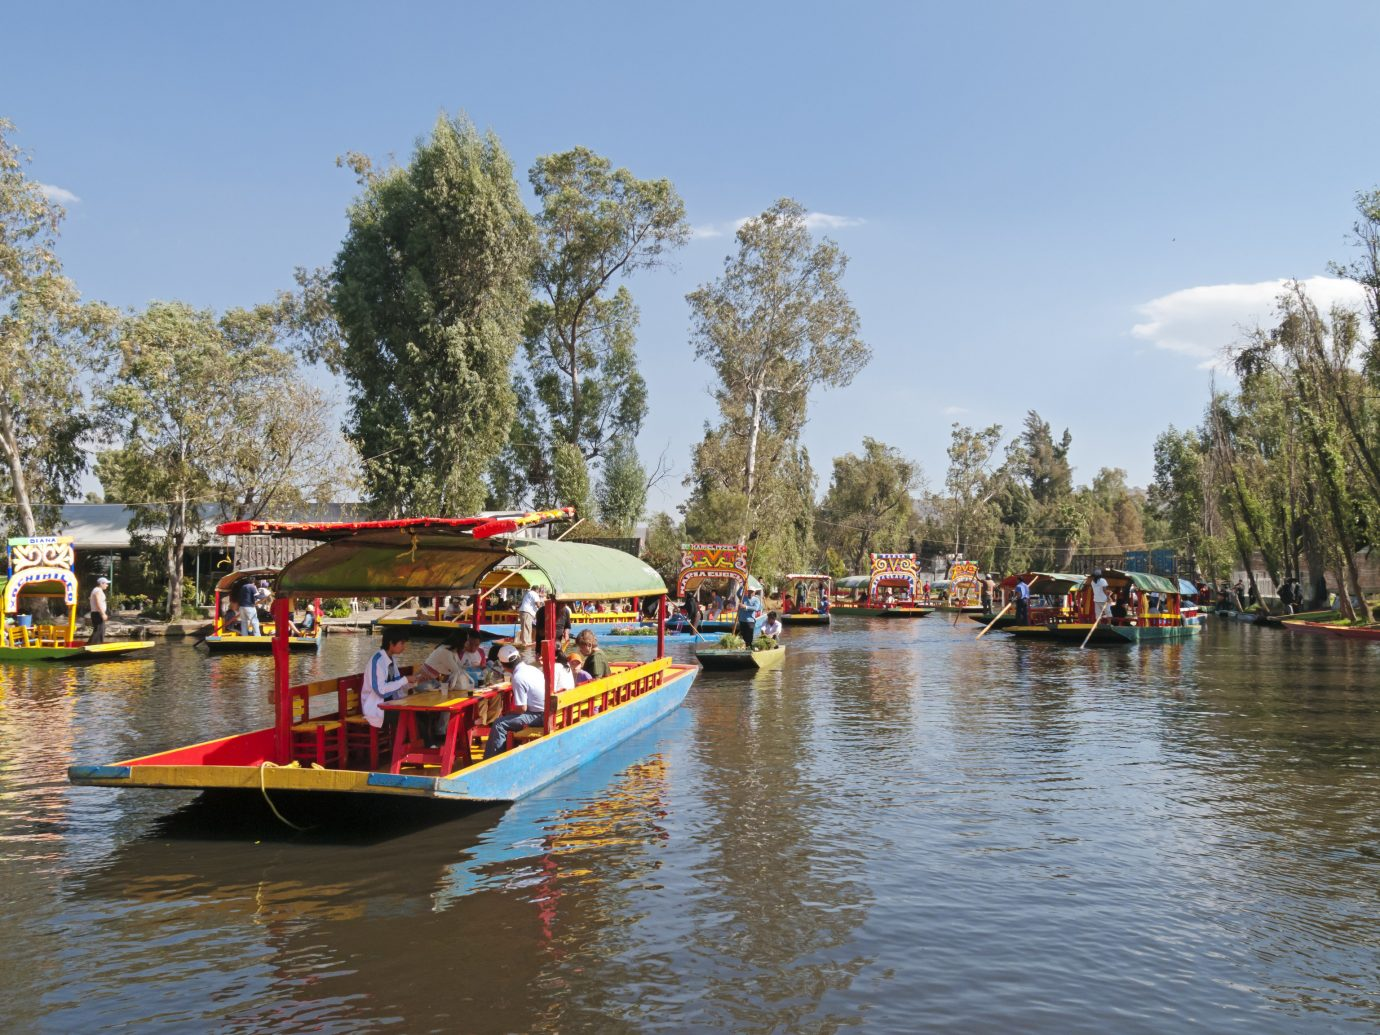 Arts + Culture Mexico City Travel Tips Trip Ideas waterway body of water water transportation Boat Canal water plant boating tree River vehicle watercraft leisure bank recreation Lake landscape tourism bayou